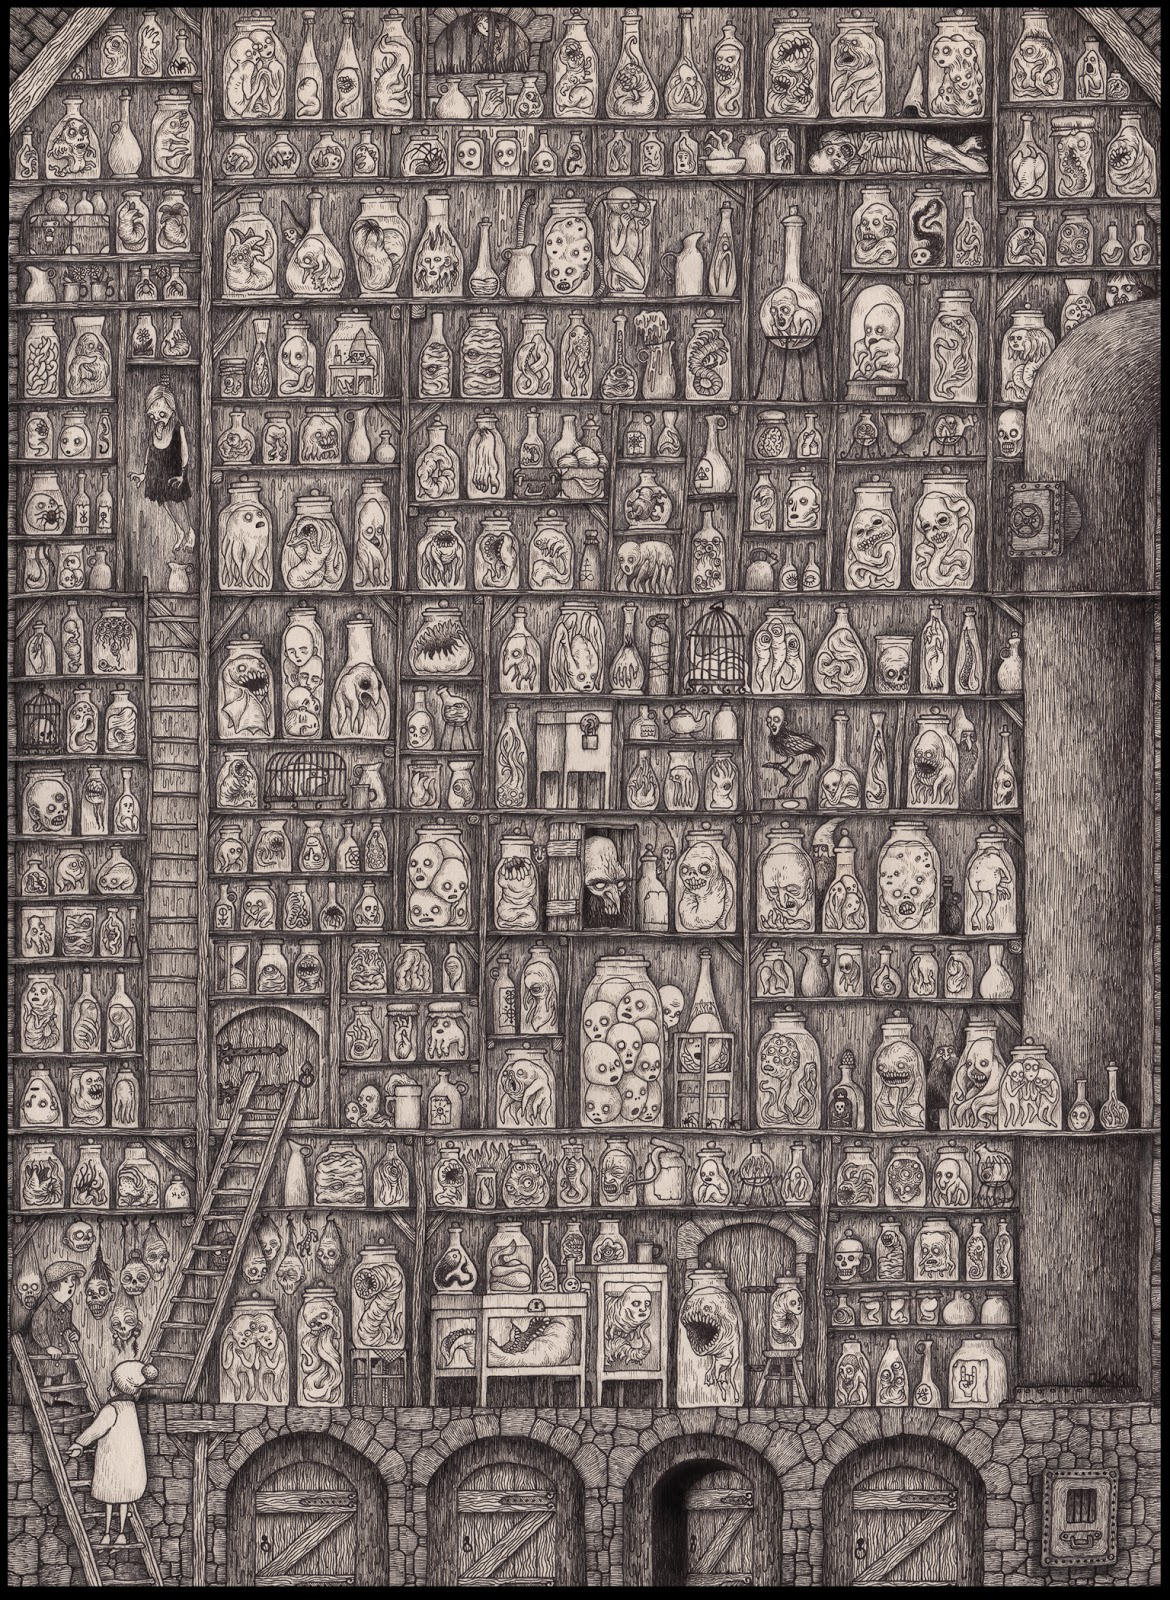 A sketch of hundreds of bottles with numerous creatures in them arranged on giant bookshelf